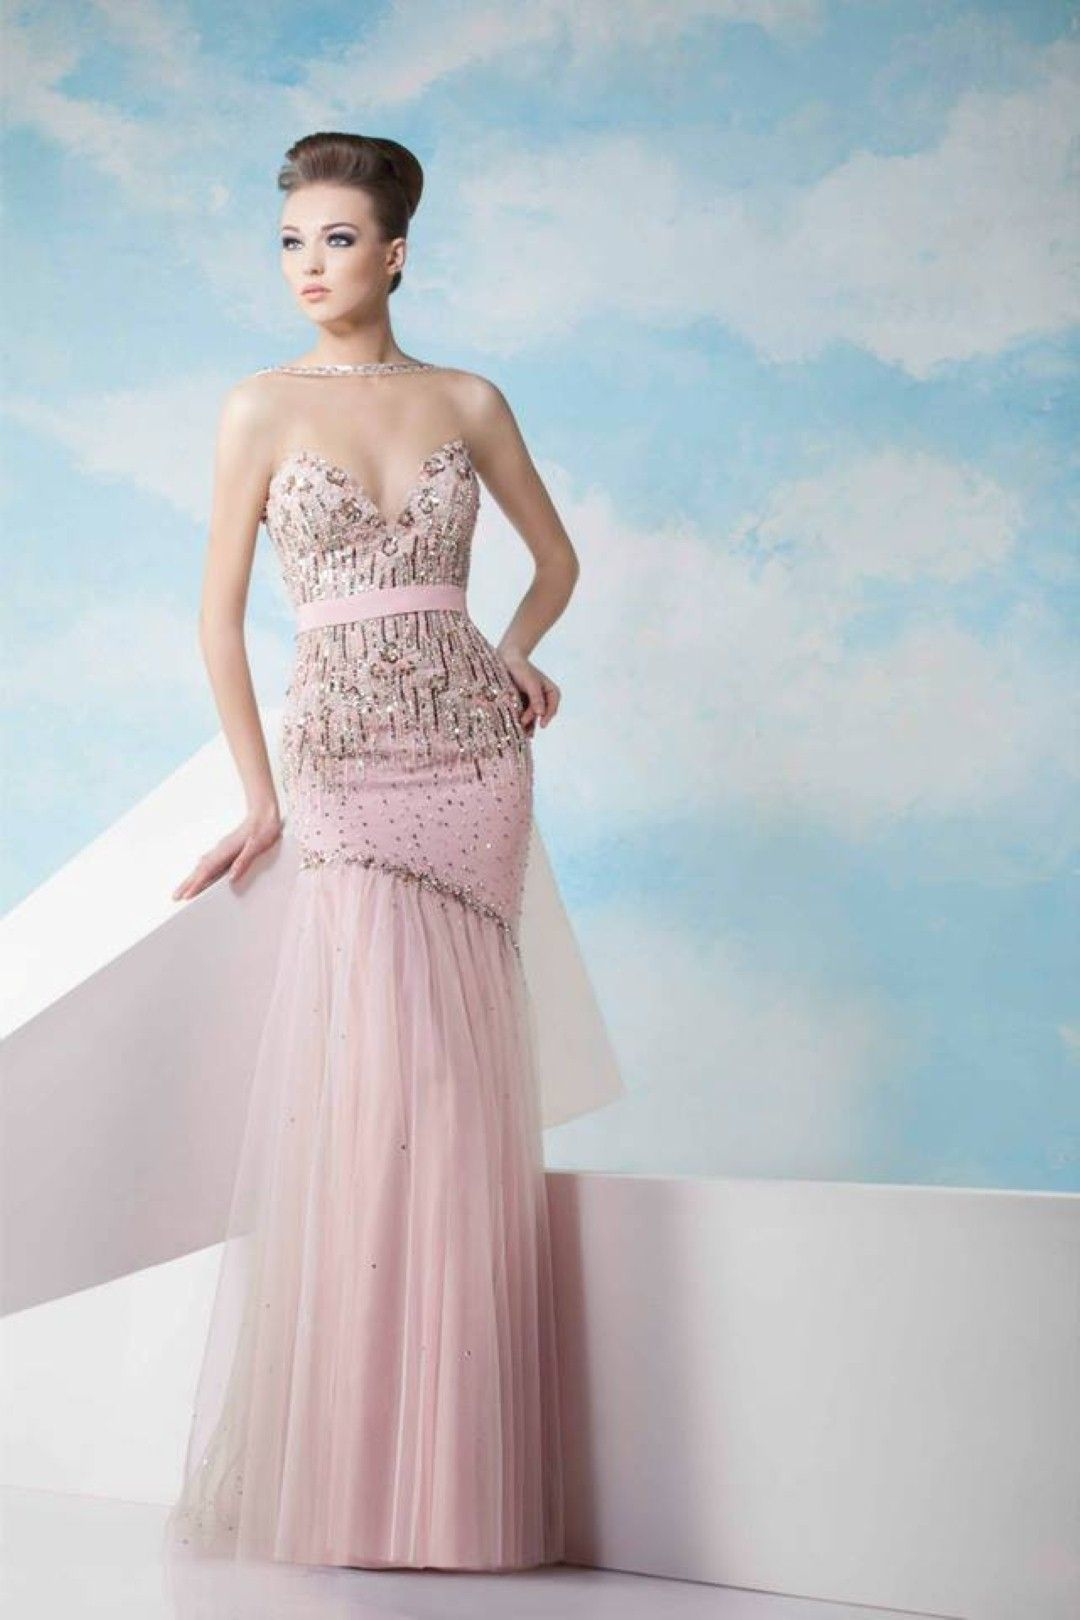 Fabulous Evening Dresses Spring/Summer 2014 by Tony Chaaya | Wedding ...